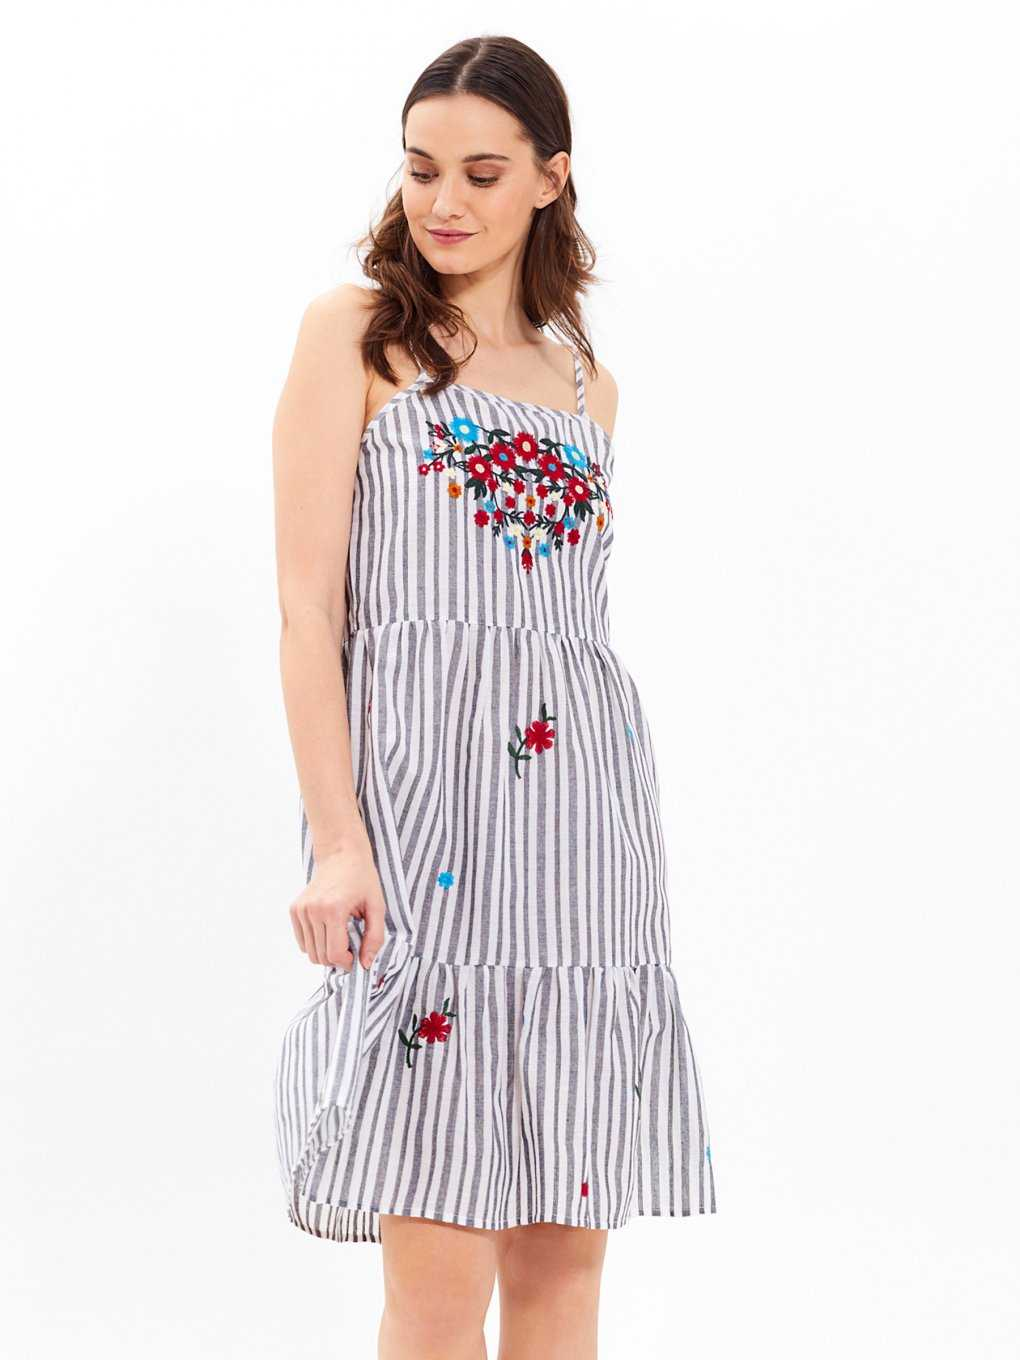 Cotton striped strappy dress with embroidery